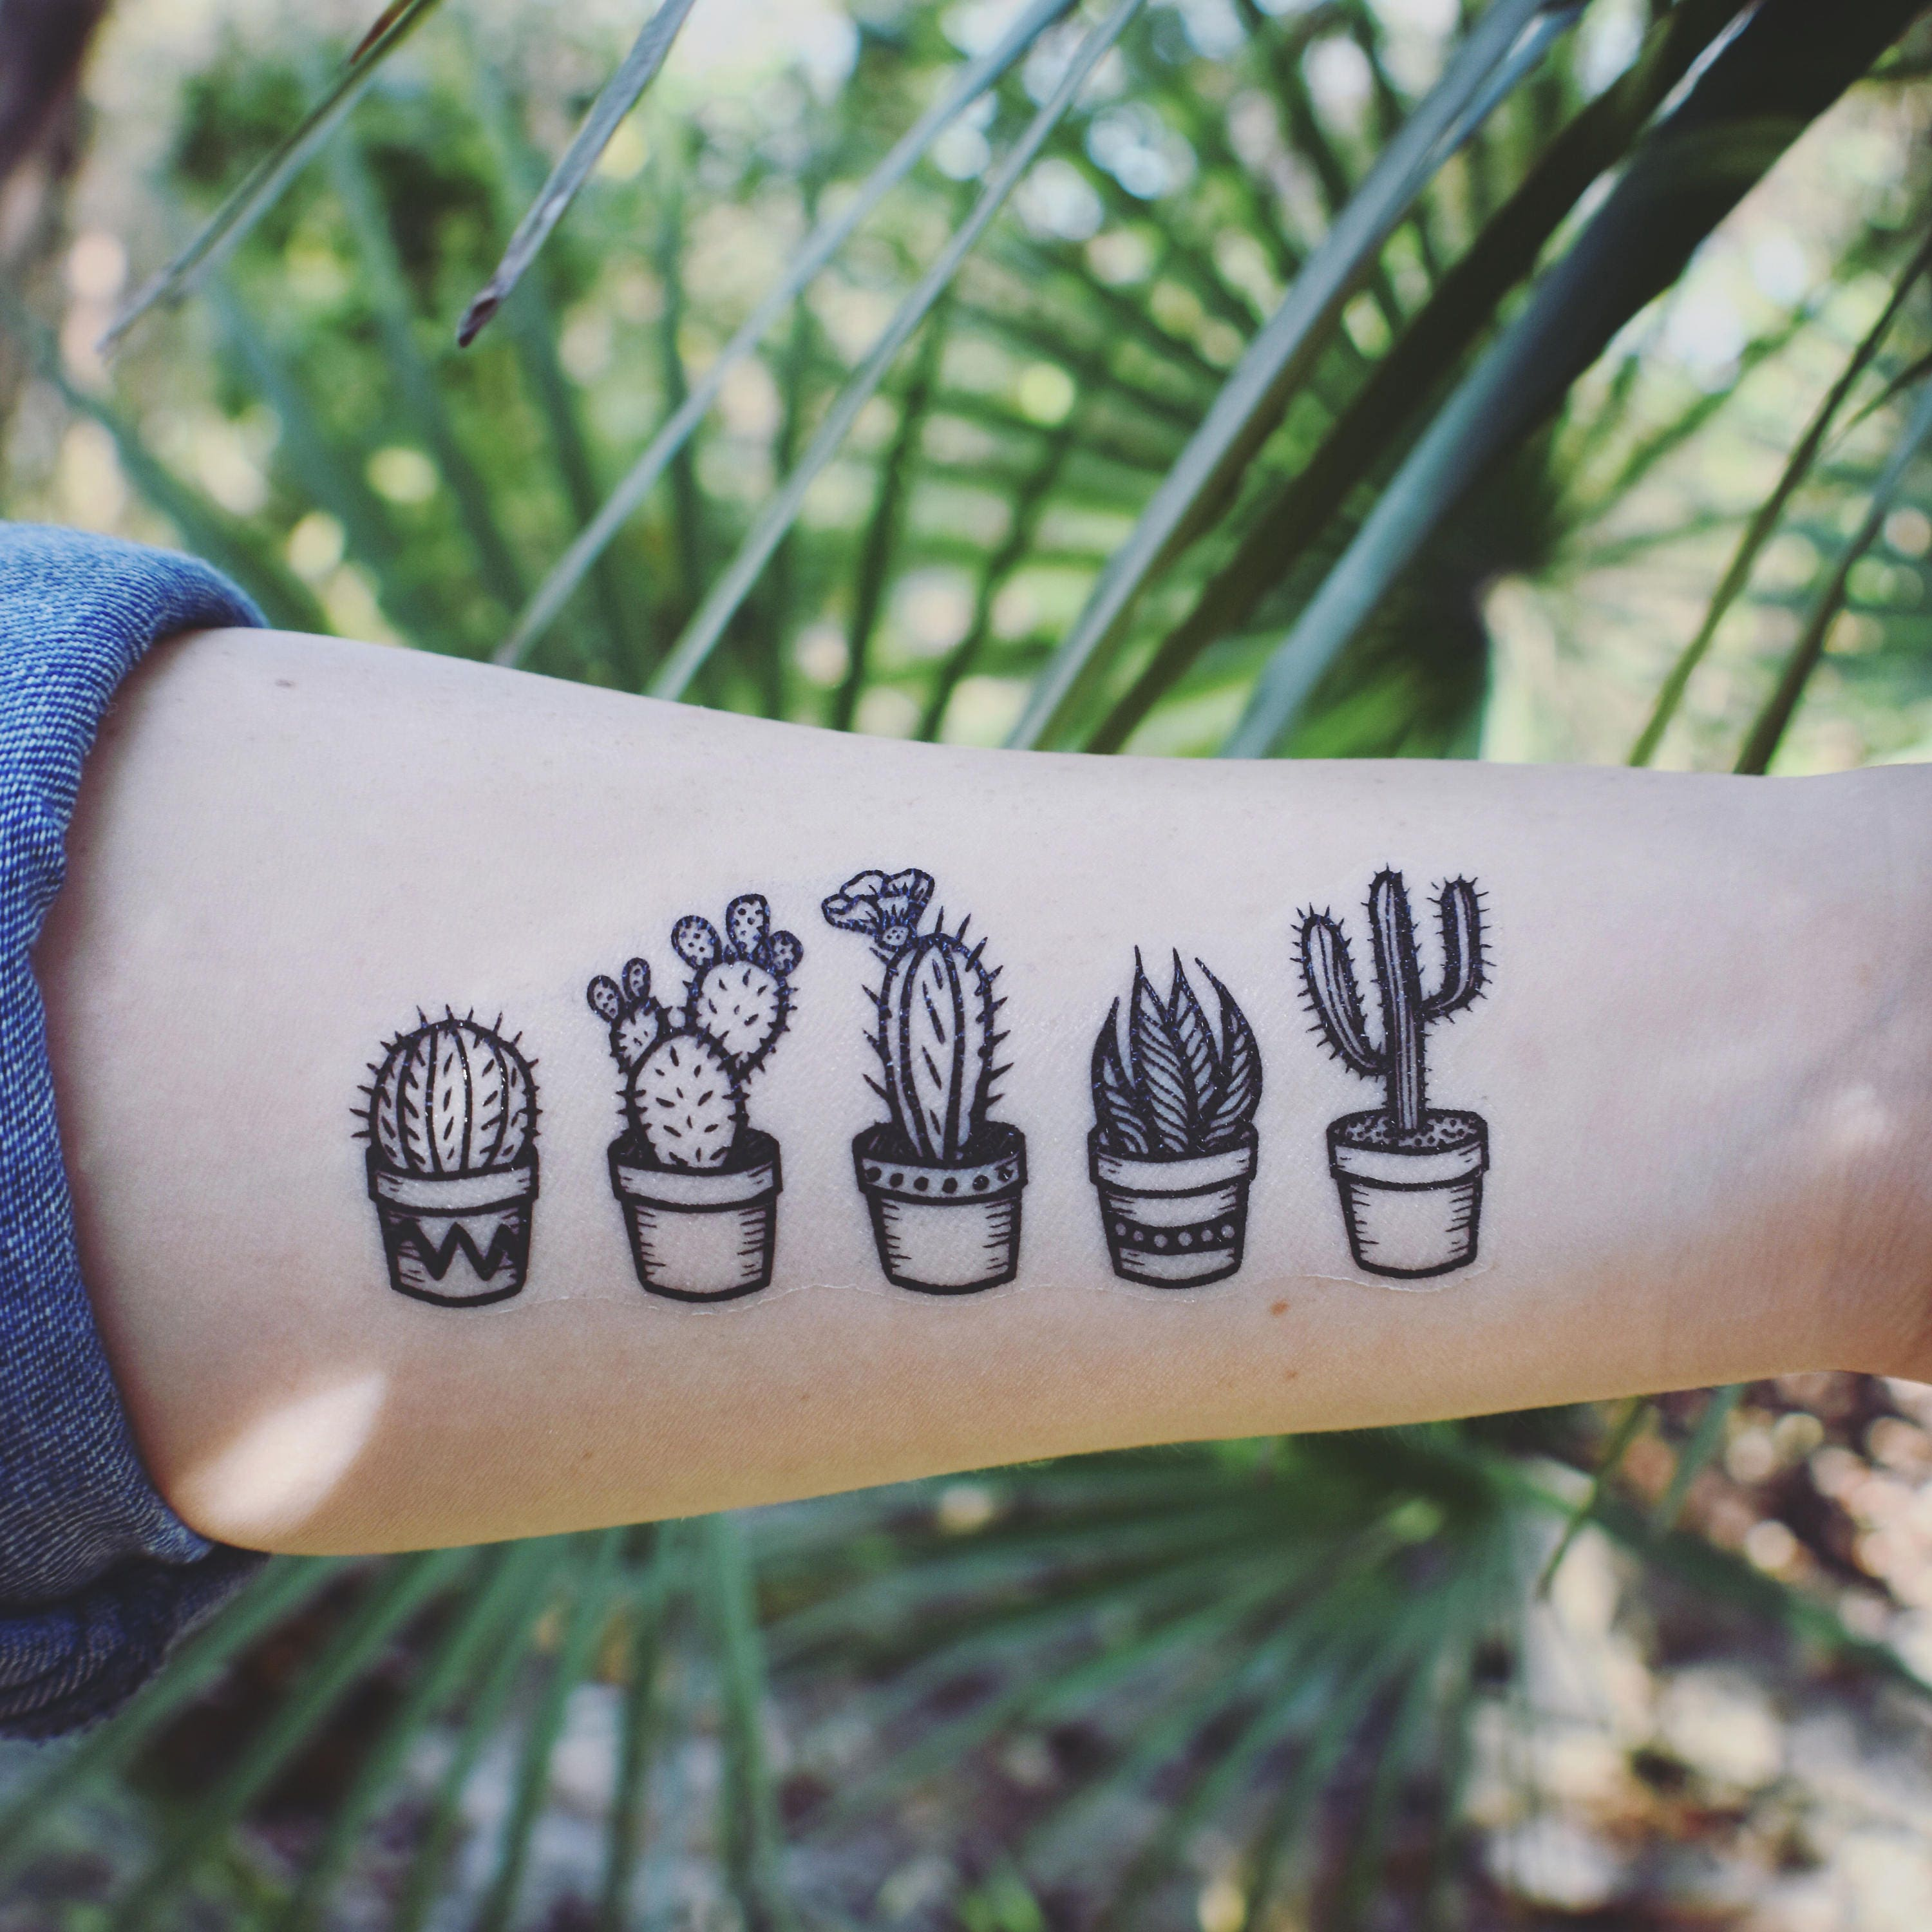 Small Cactus Tattoo: Potted Cactus Temporary Tattoos Succulent House Plants